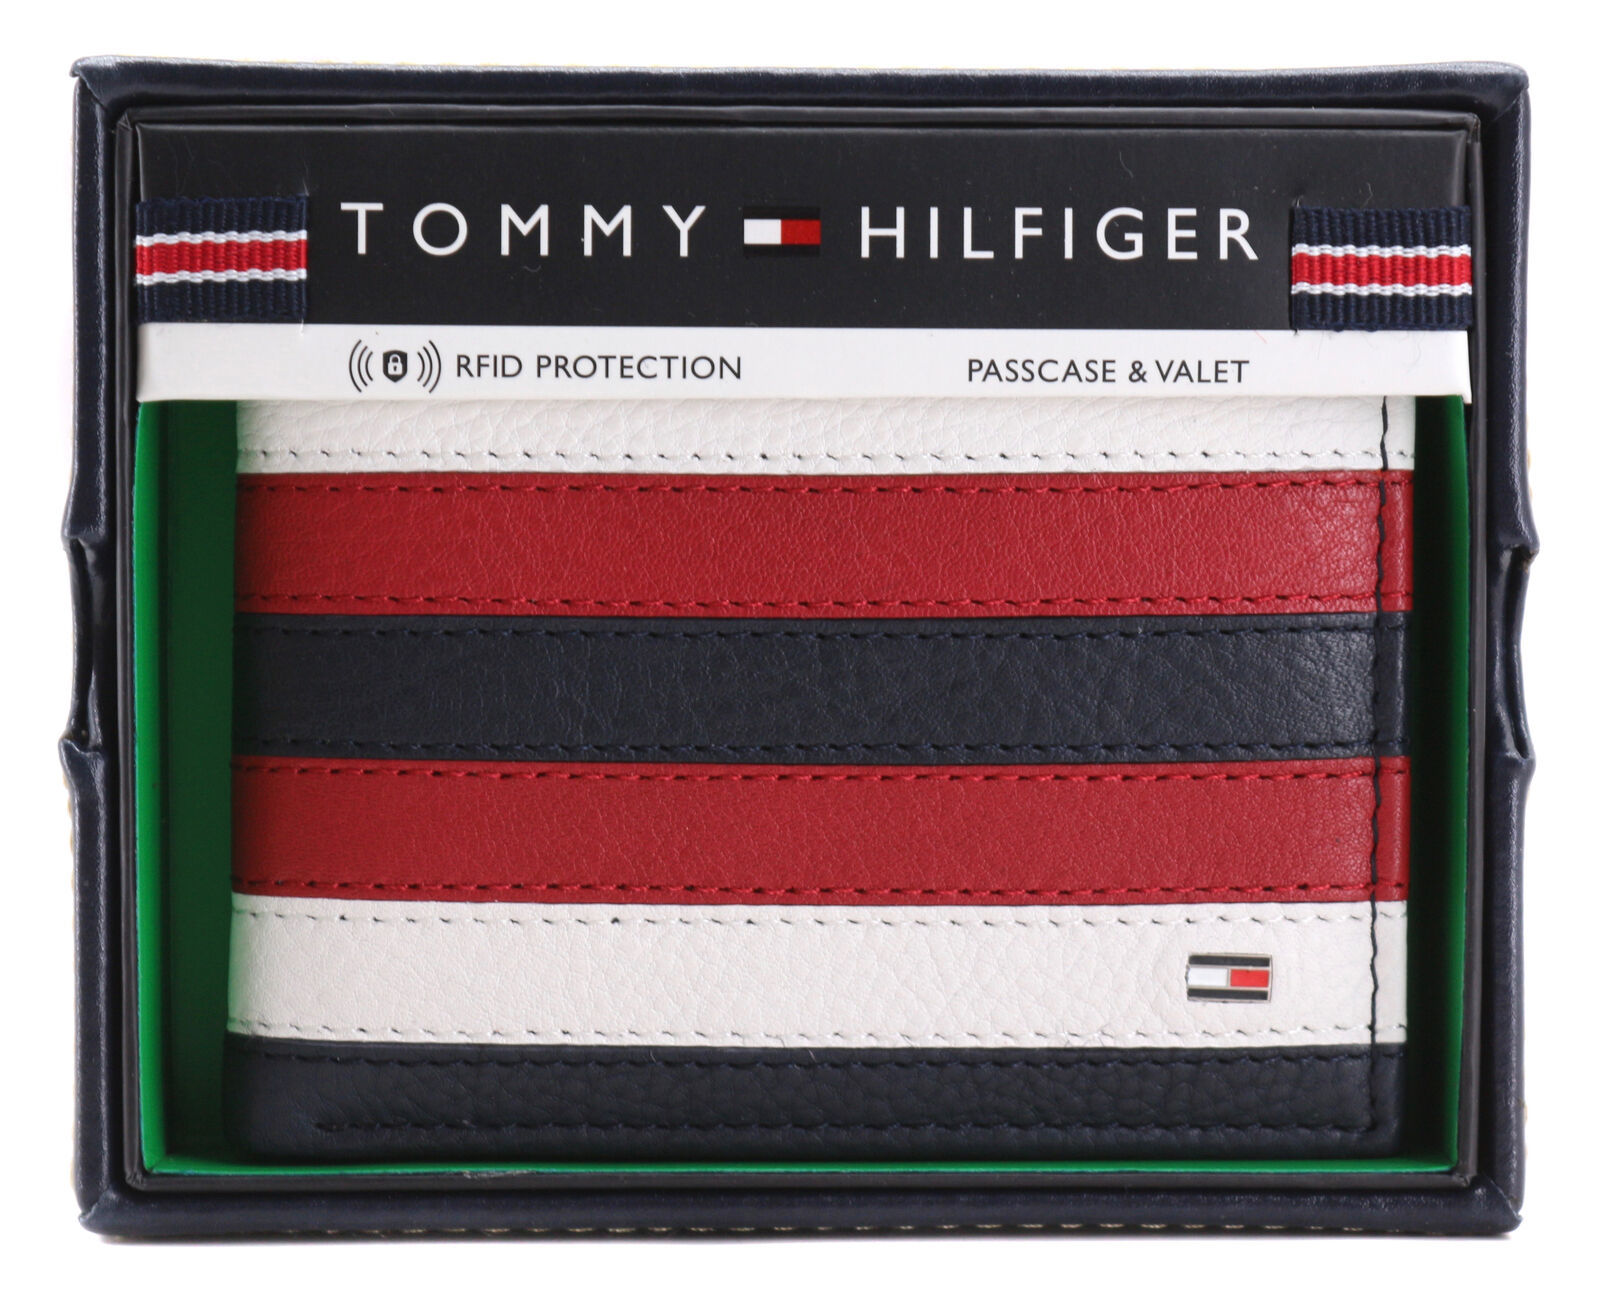 Tommy Hilfiger Men's Leather Wallet Passcase Billfold RFID Navy Red 31TL220104